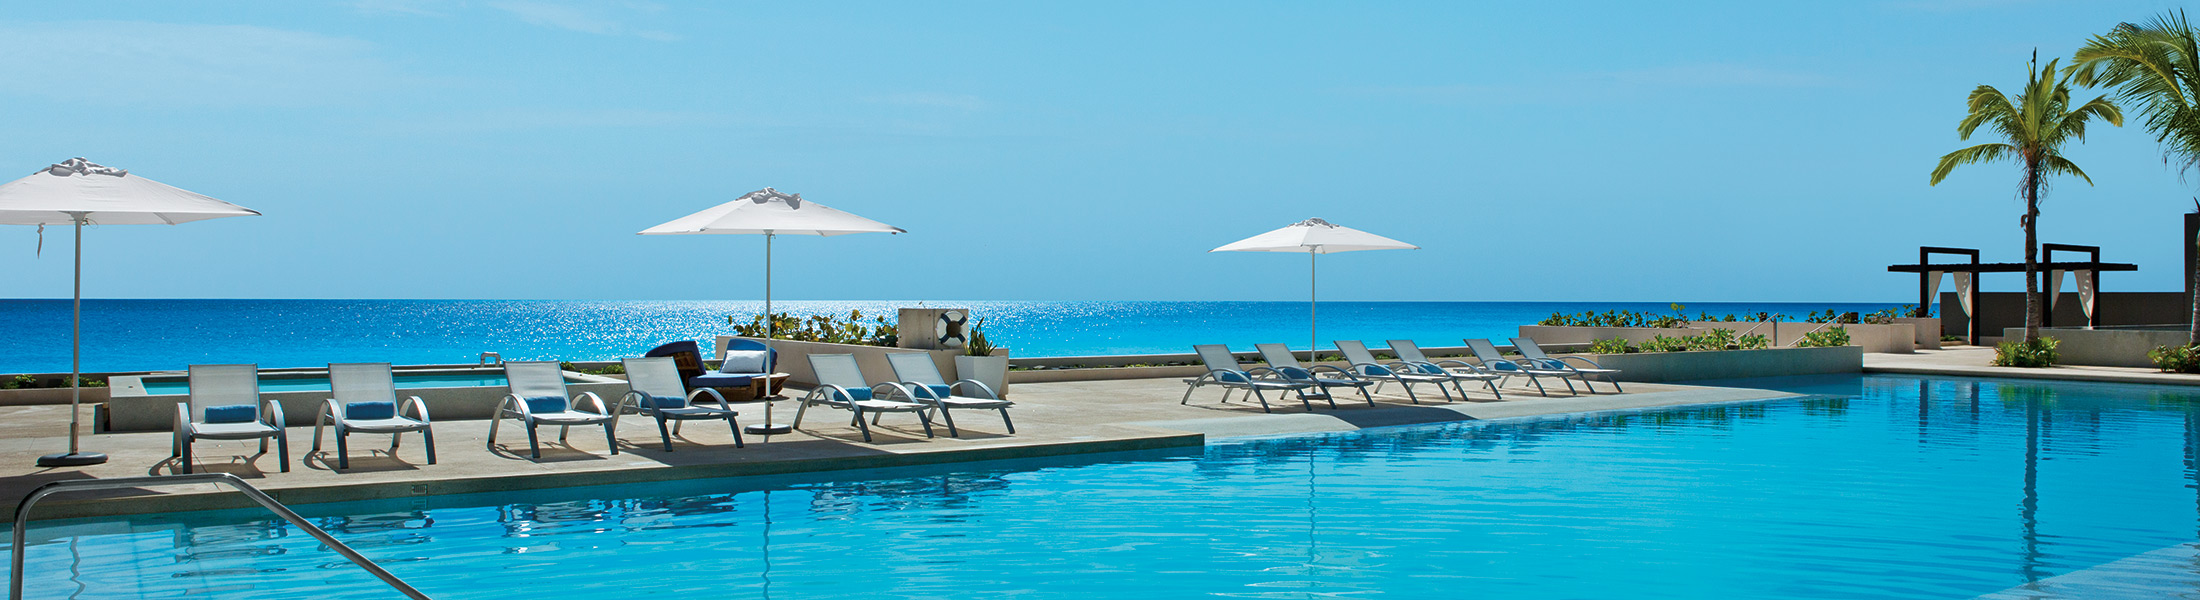 Pool and sun loungers with ocean views at Secrets The Vine